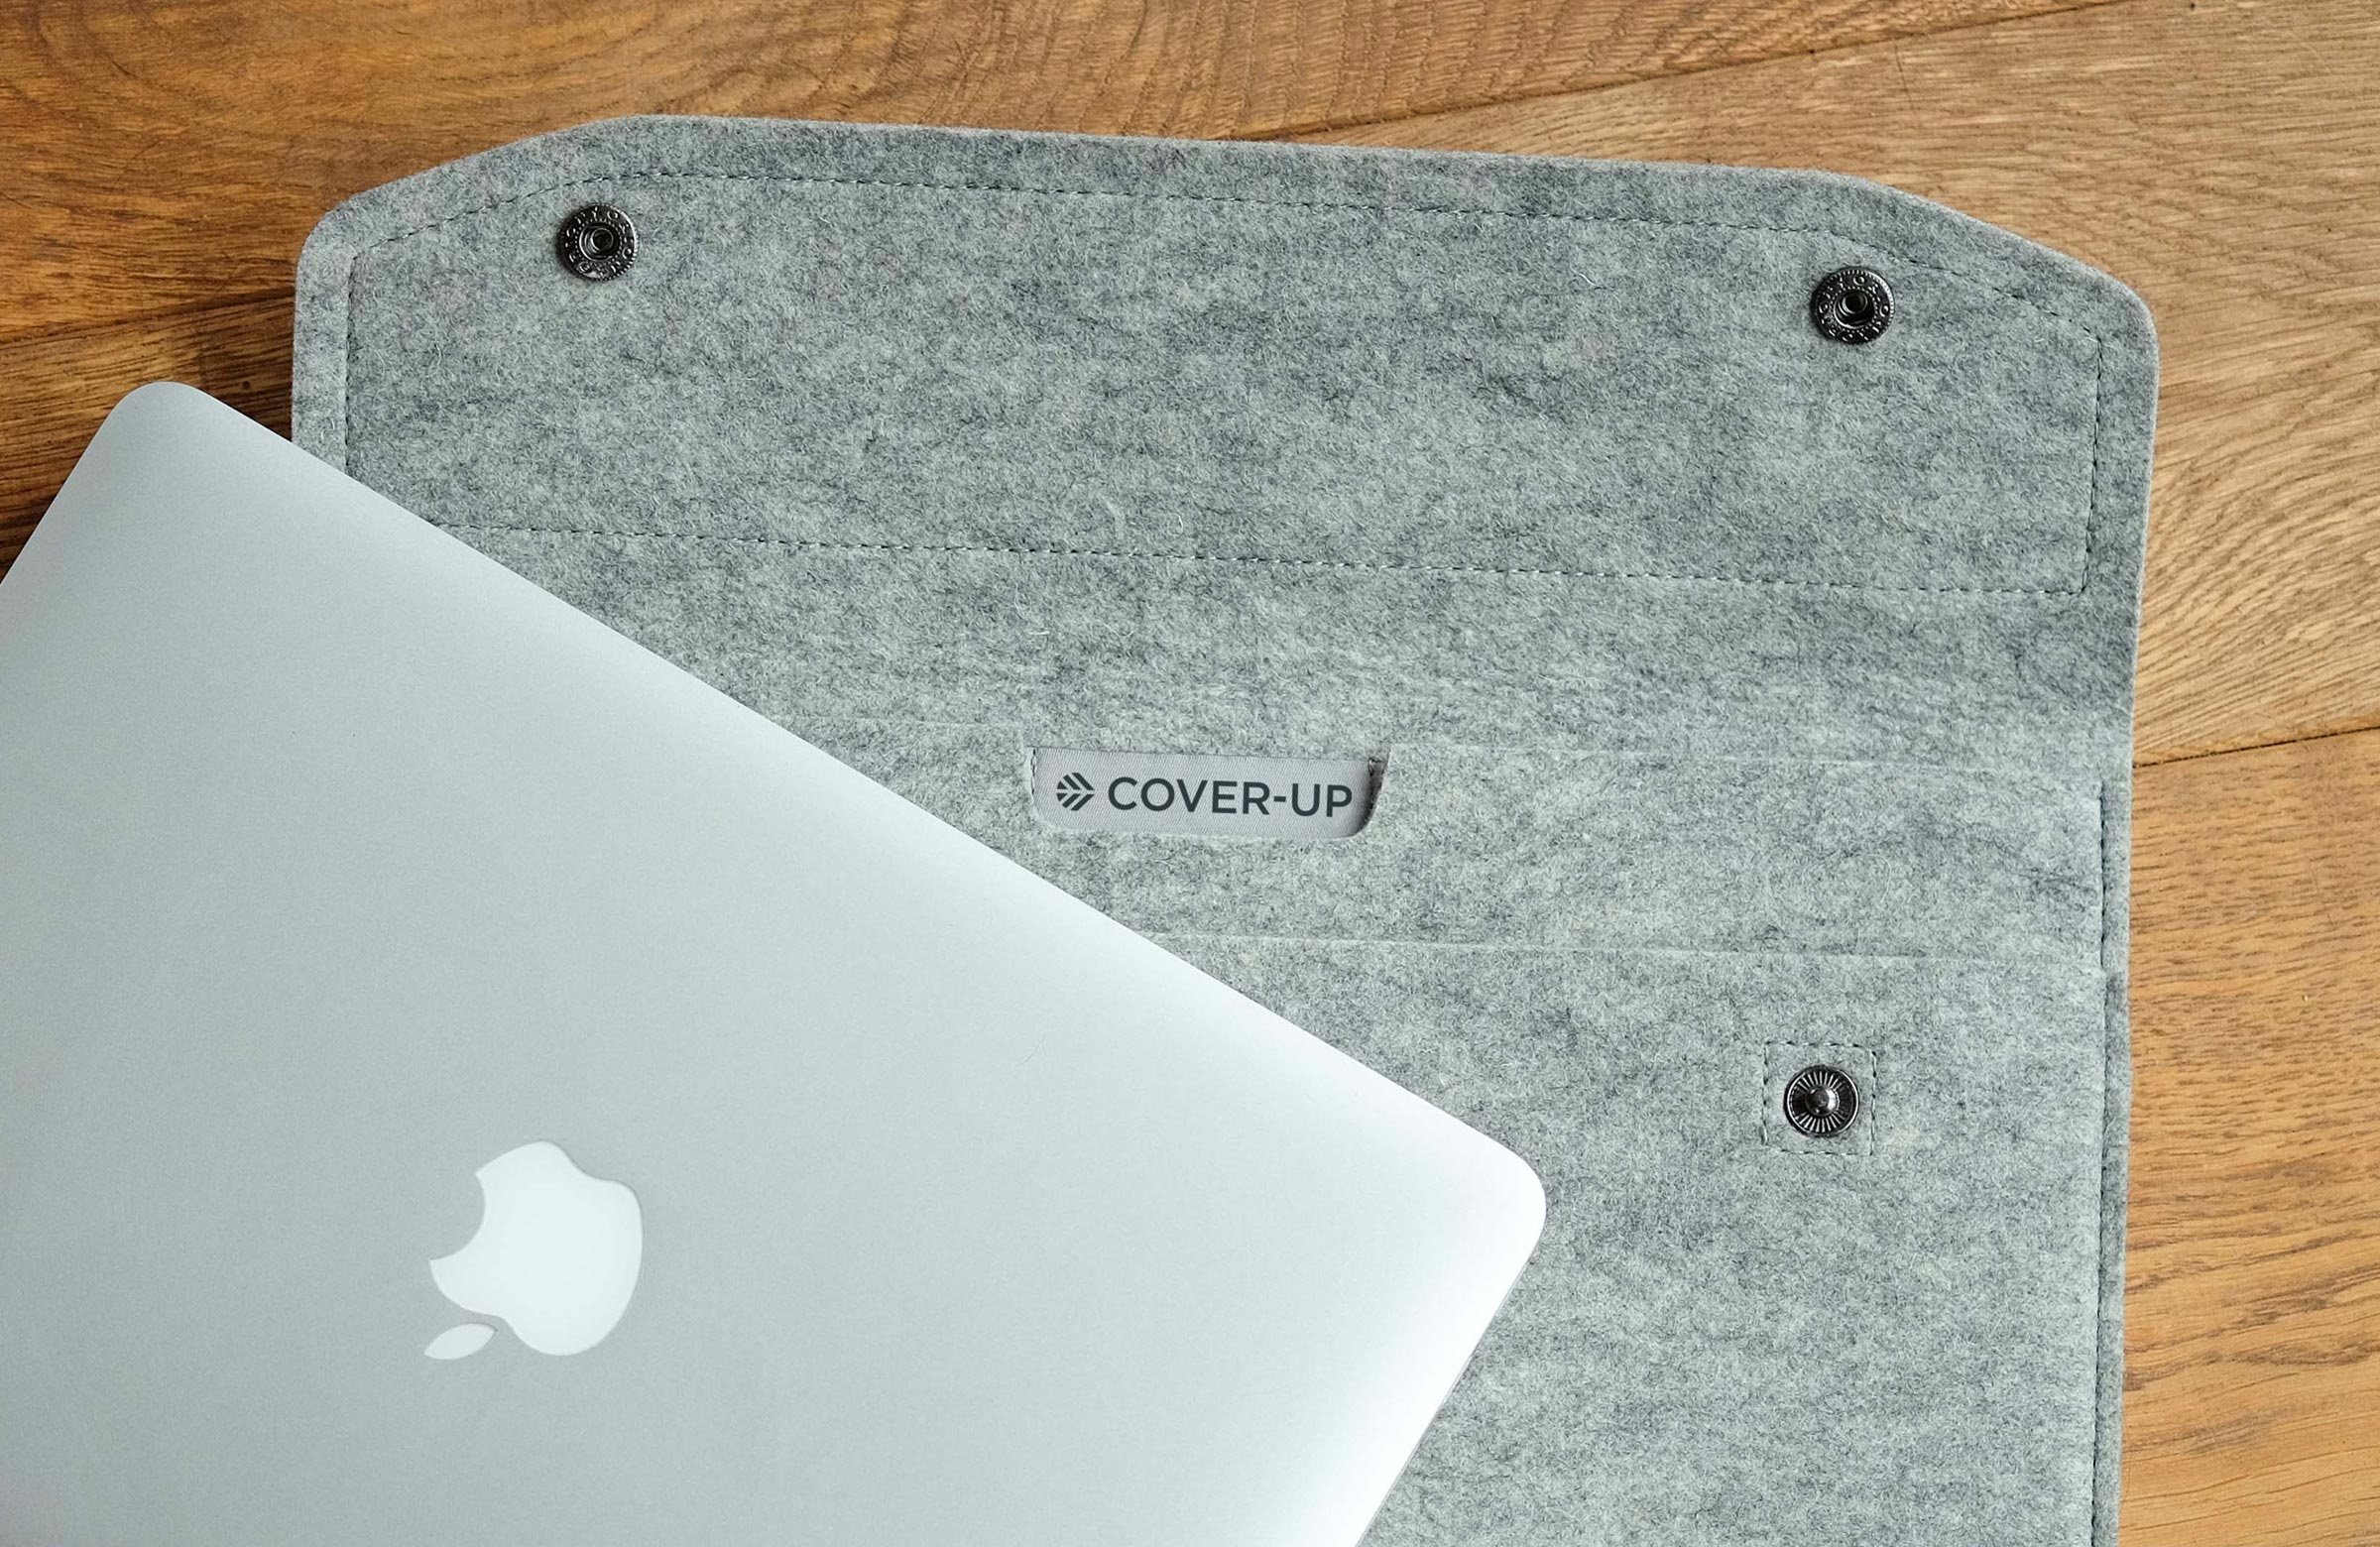 Cover-Up product Apple iMac Ipad Logo Branding Brand Design